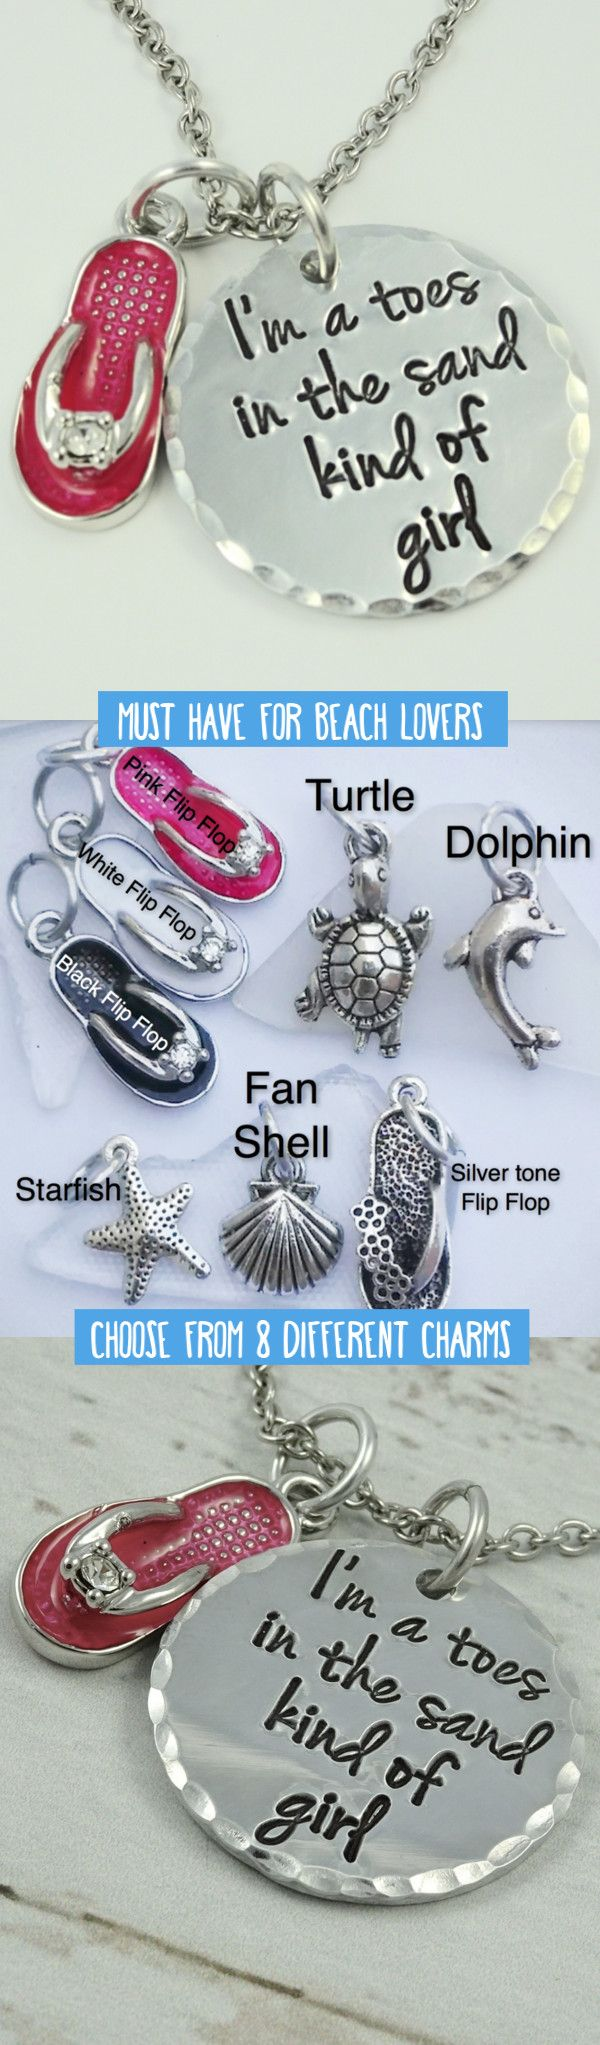 Are you a toes in the sand kind of beach girl? Wear this necklace to show your love for the sand, beach, and ocean! Includes your choice of charm: Fan Shell, Silver Flip Flop, Starfish, Turtle, Dolphin, Pink Flip Flop, Black Flip Flop, or White Flip Flop.